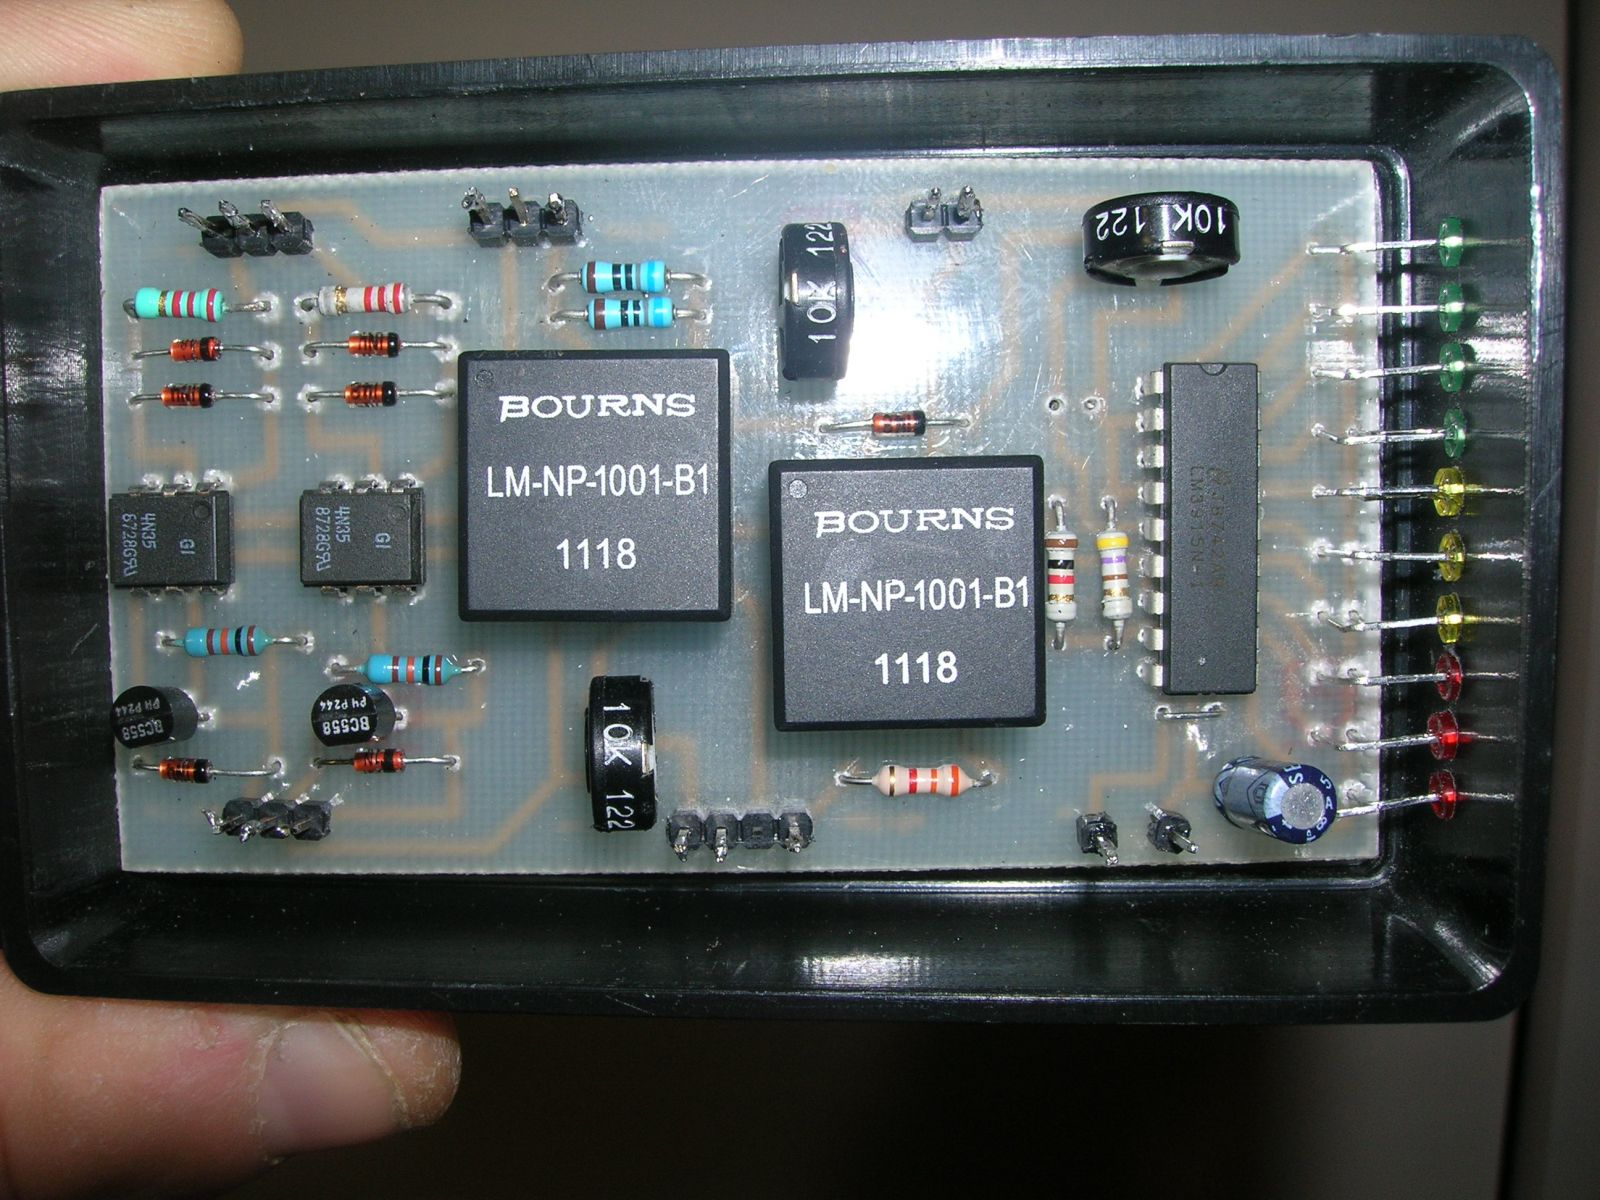 digital interface for psk31 rtty cw with vu-meter